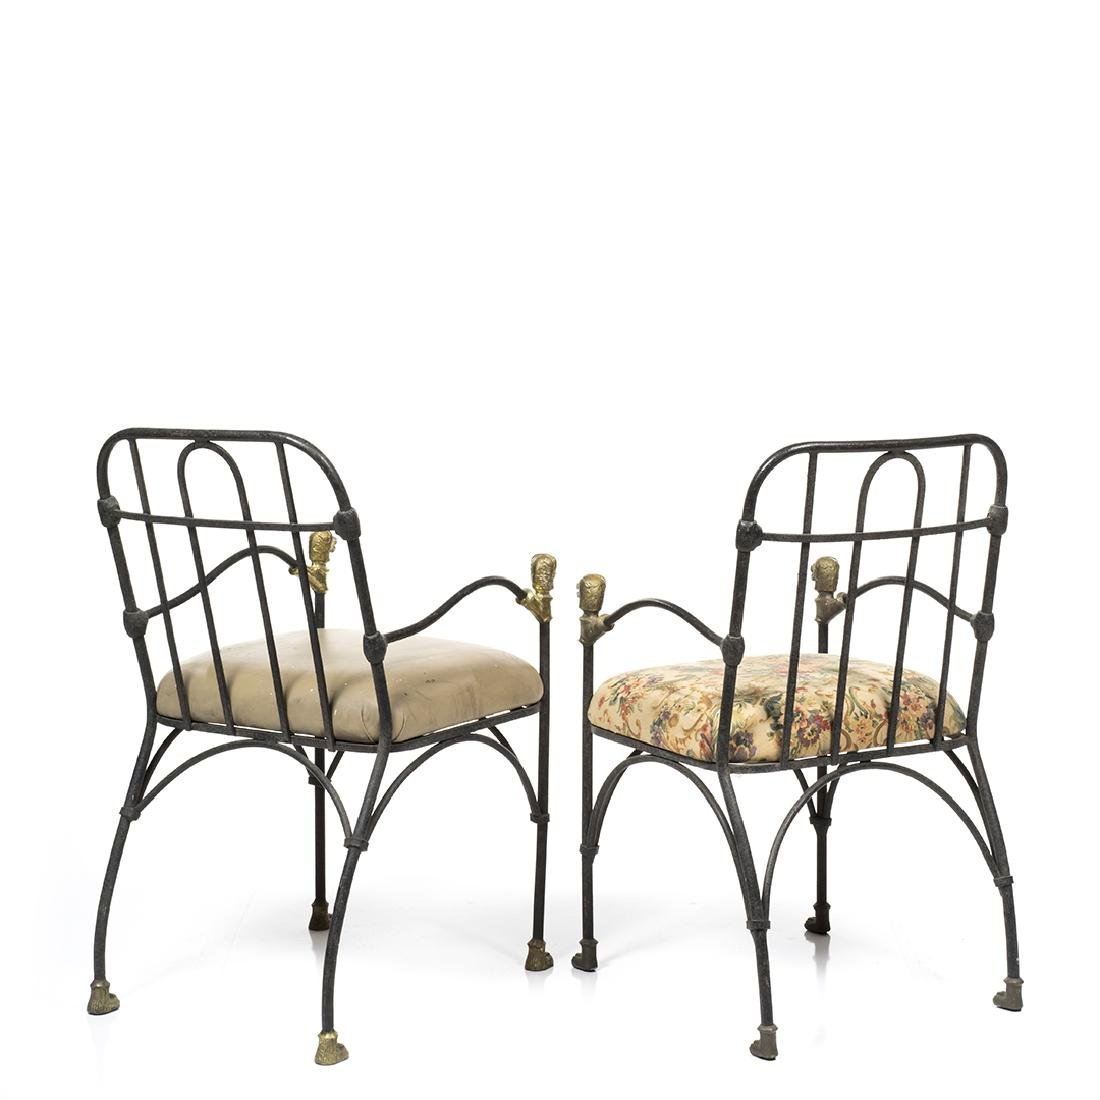 Diego Giacometti Style Chairs (2) - 3